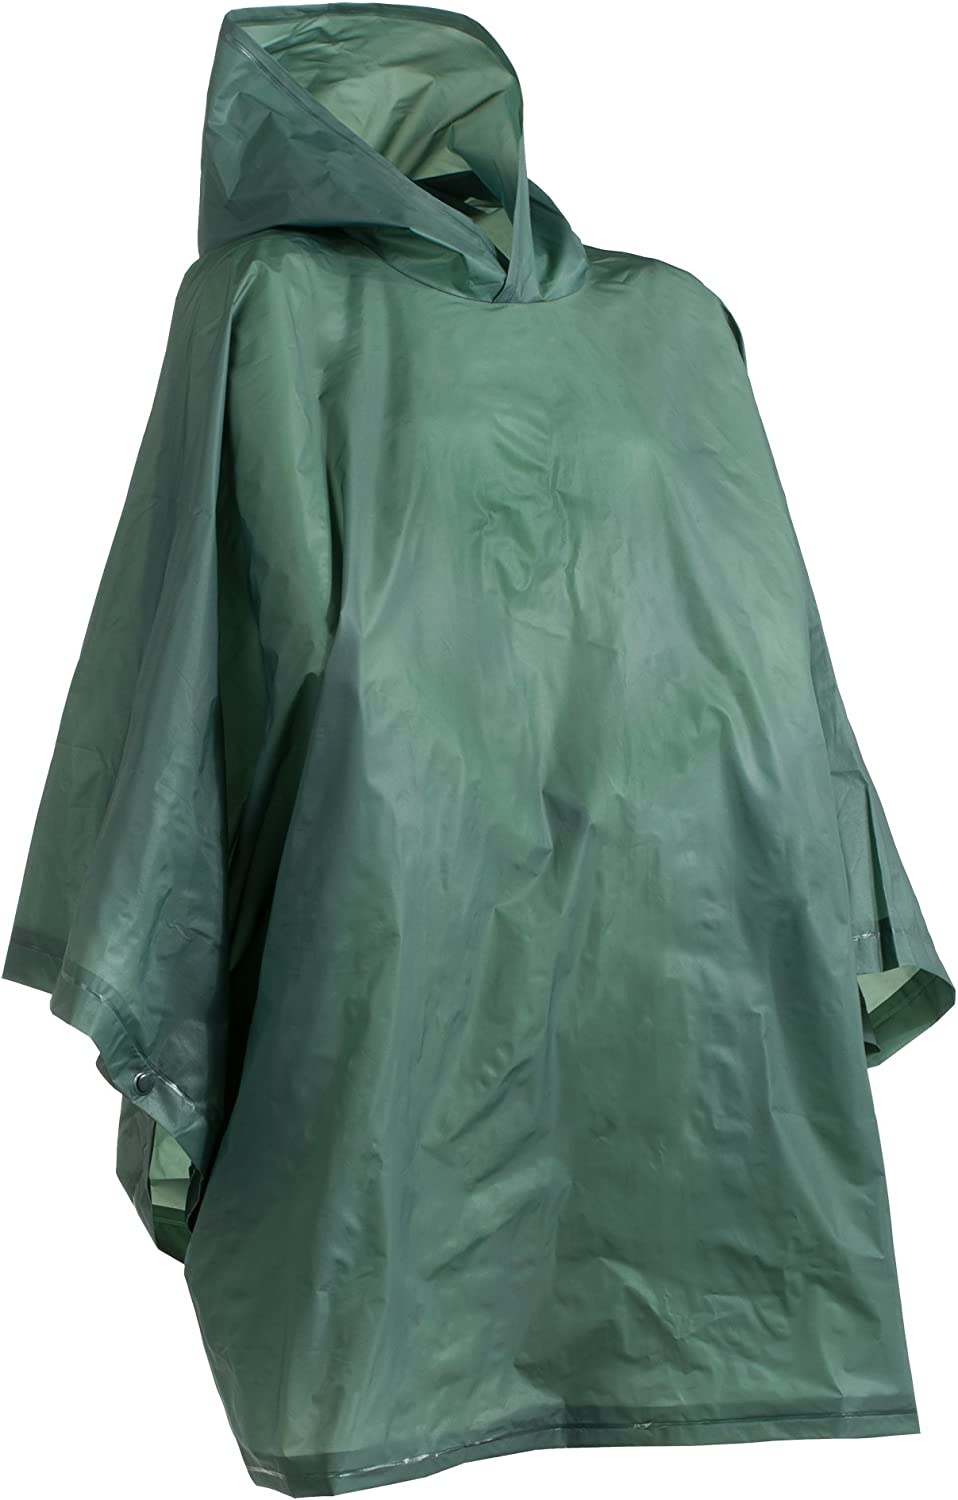 totes Unisex Elegant Rain Poncho lightweight on Factory outlet packable and reusable